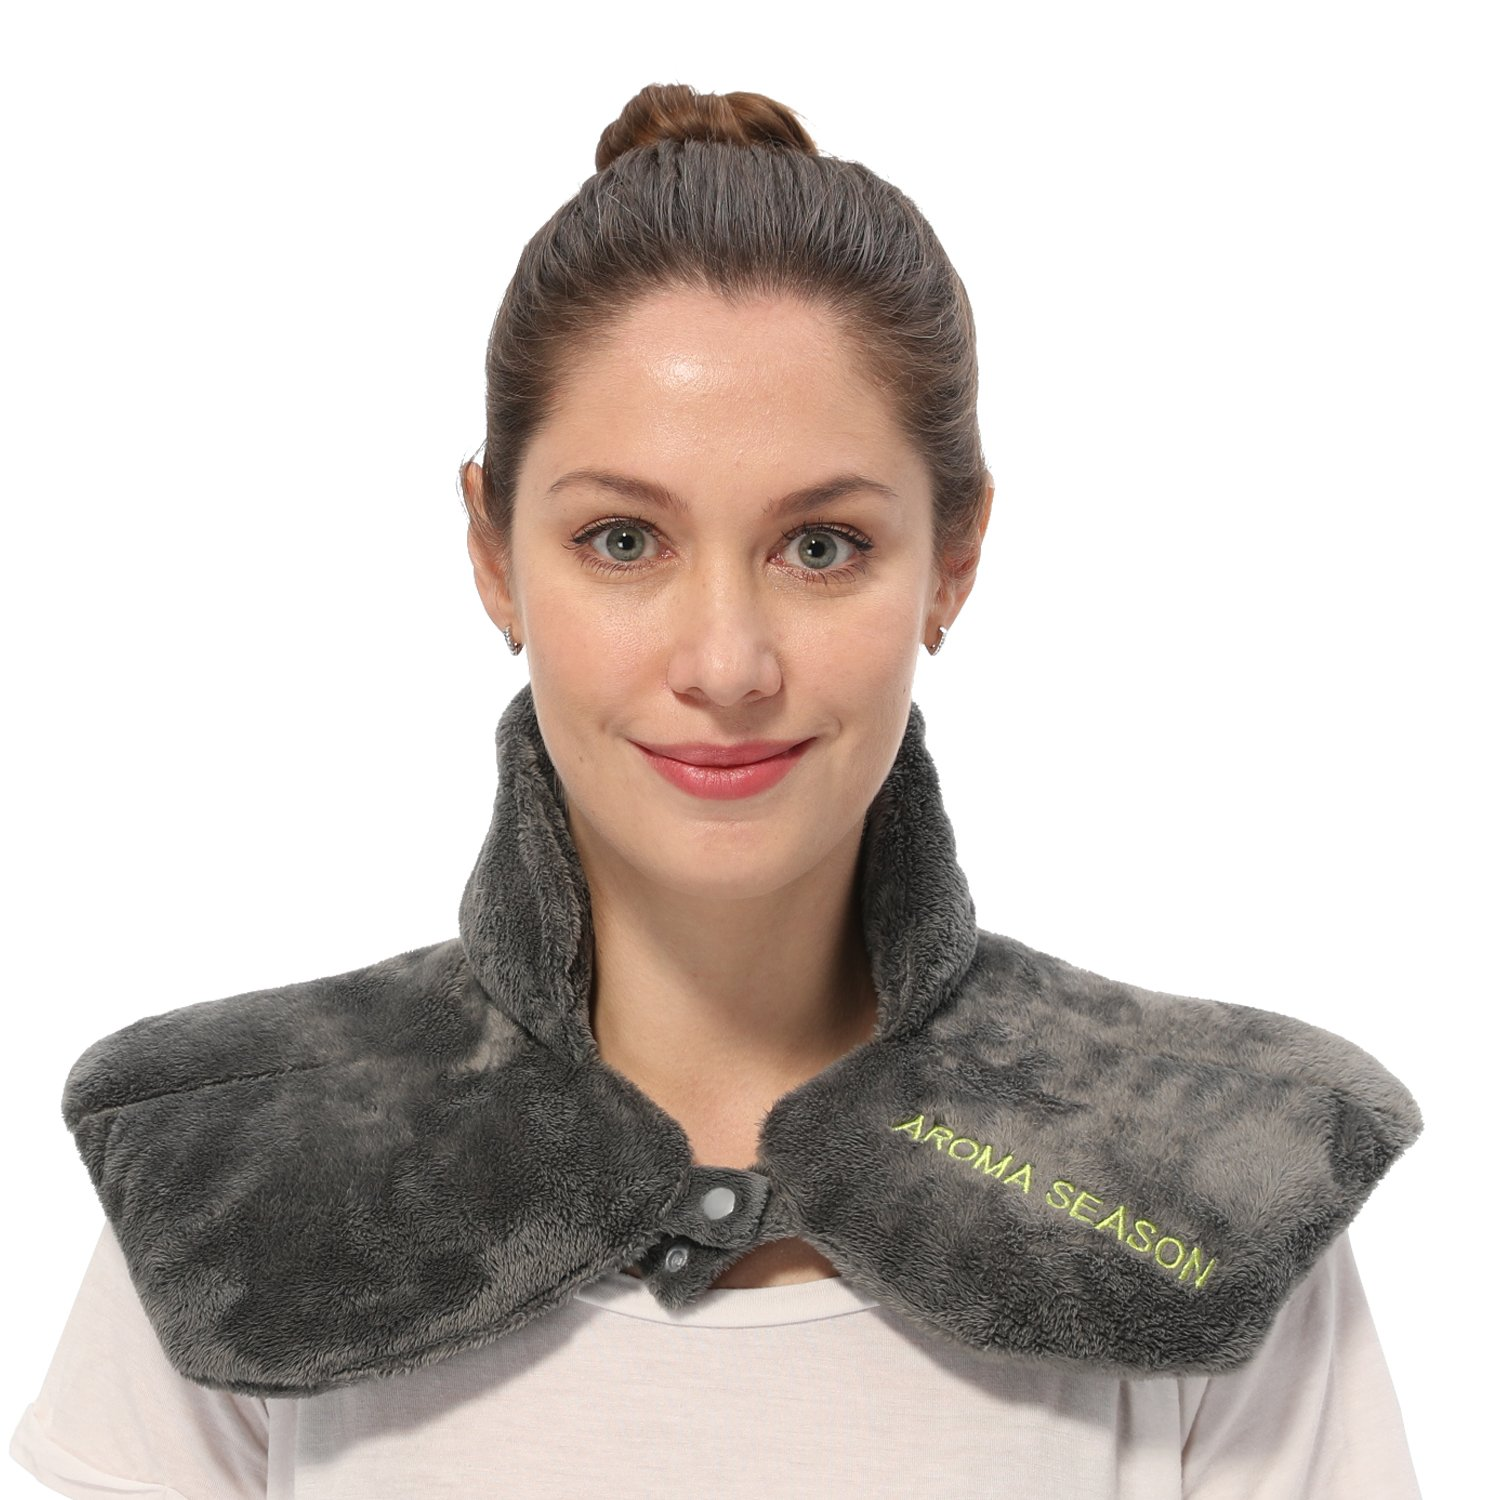 Aroma Season Instant Pain Relief Neck and Shoulder Wrap, Aromatherapy Heated Neck Pillow, Grain Pad, Soothing Aches and Tension, Migraine, Headache, Injures, Arthritis.